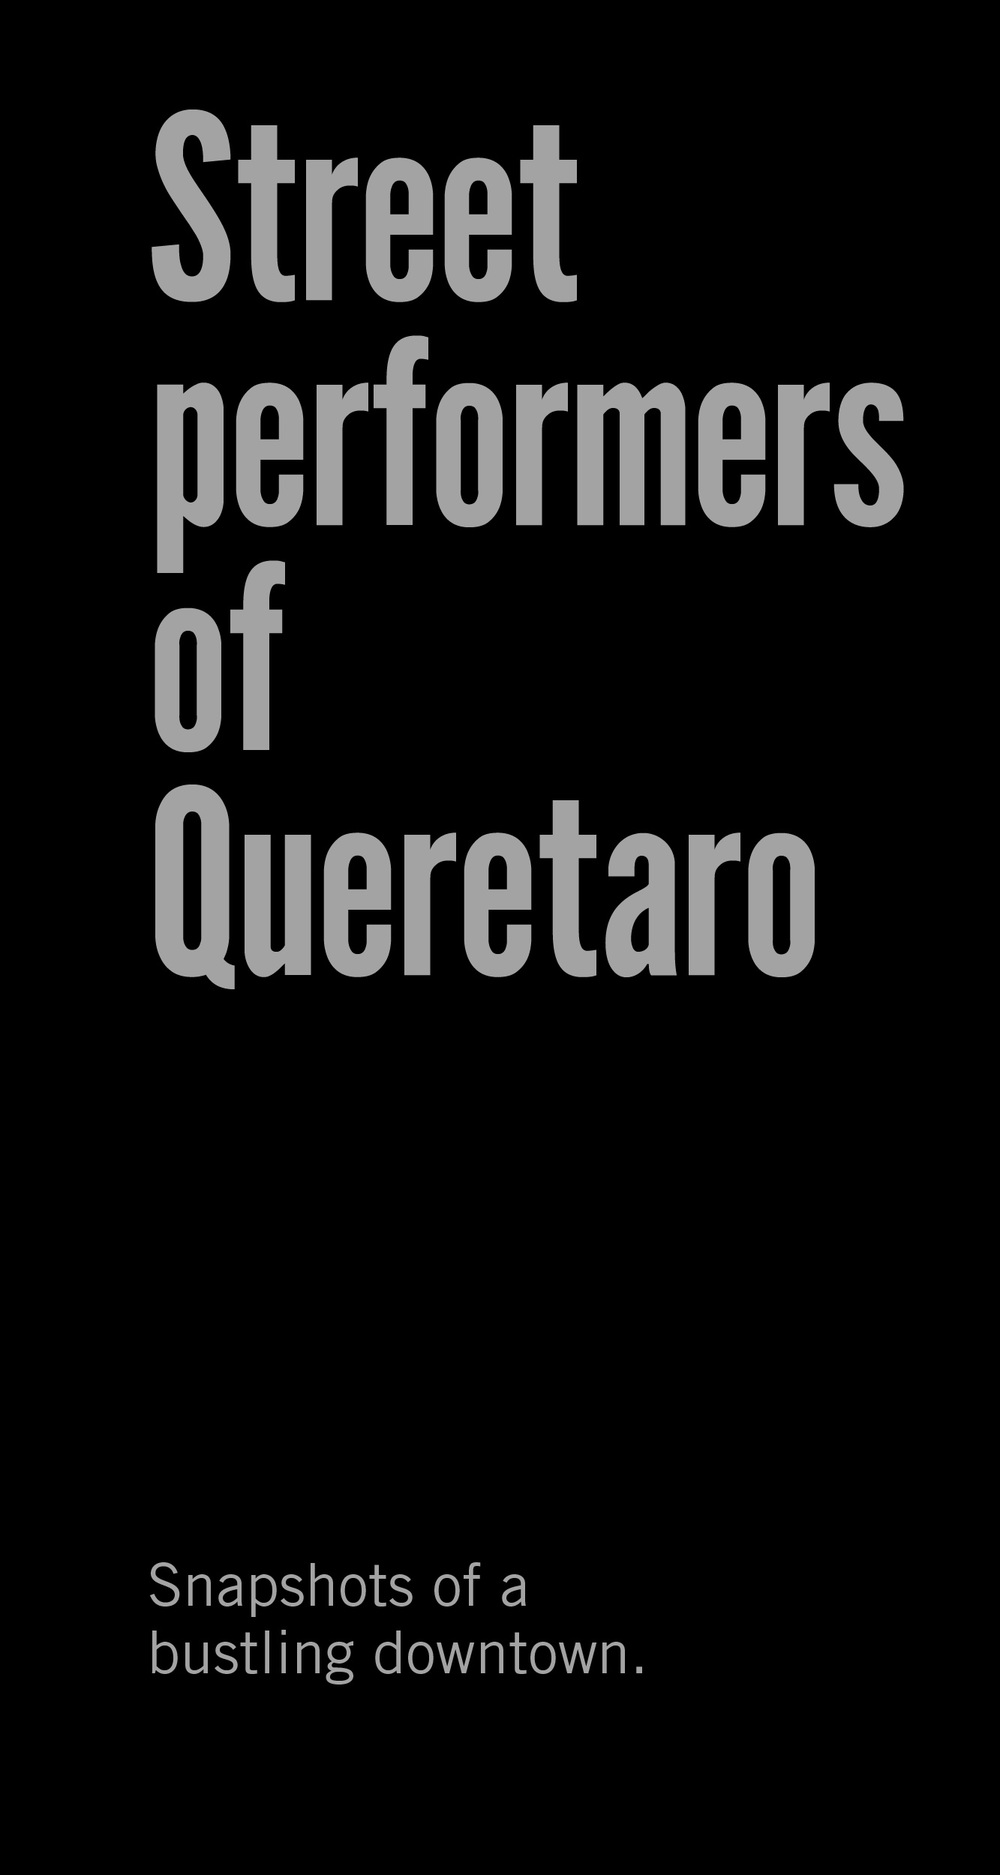 Street Performers of Queretaro